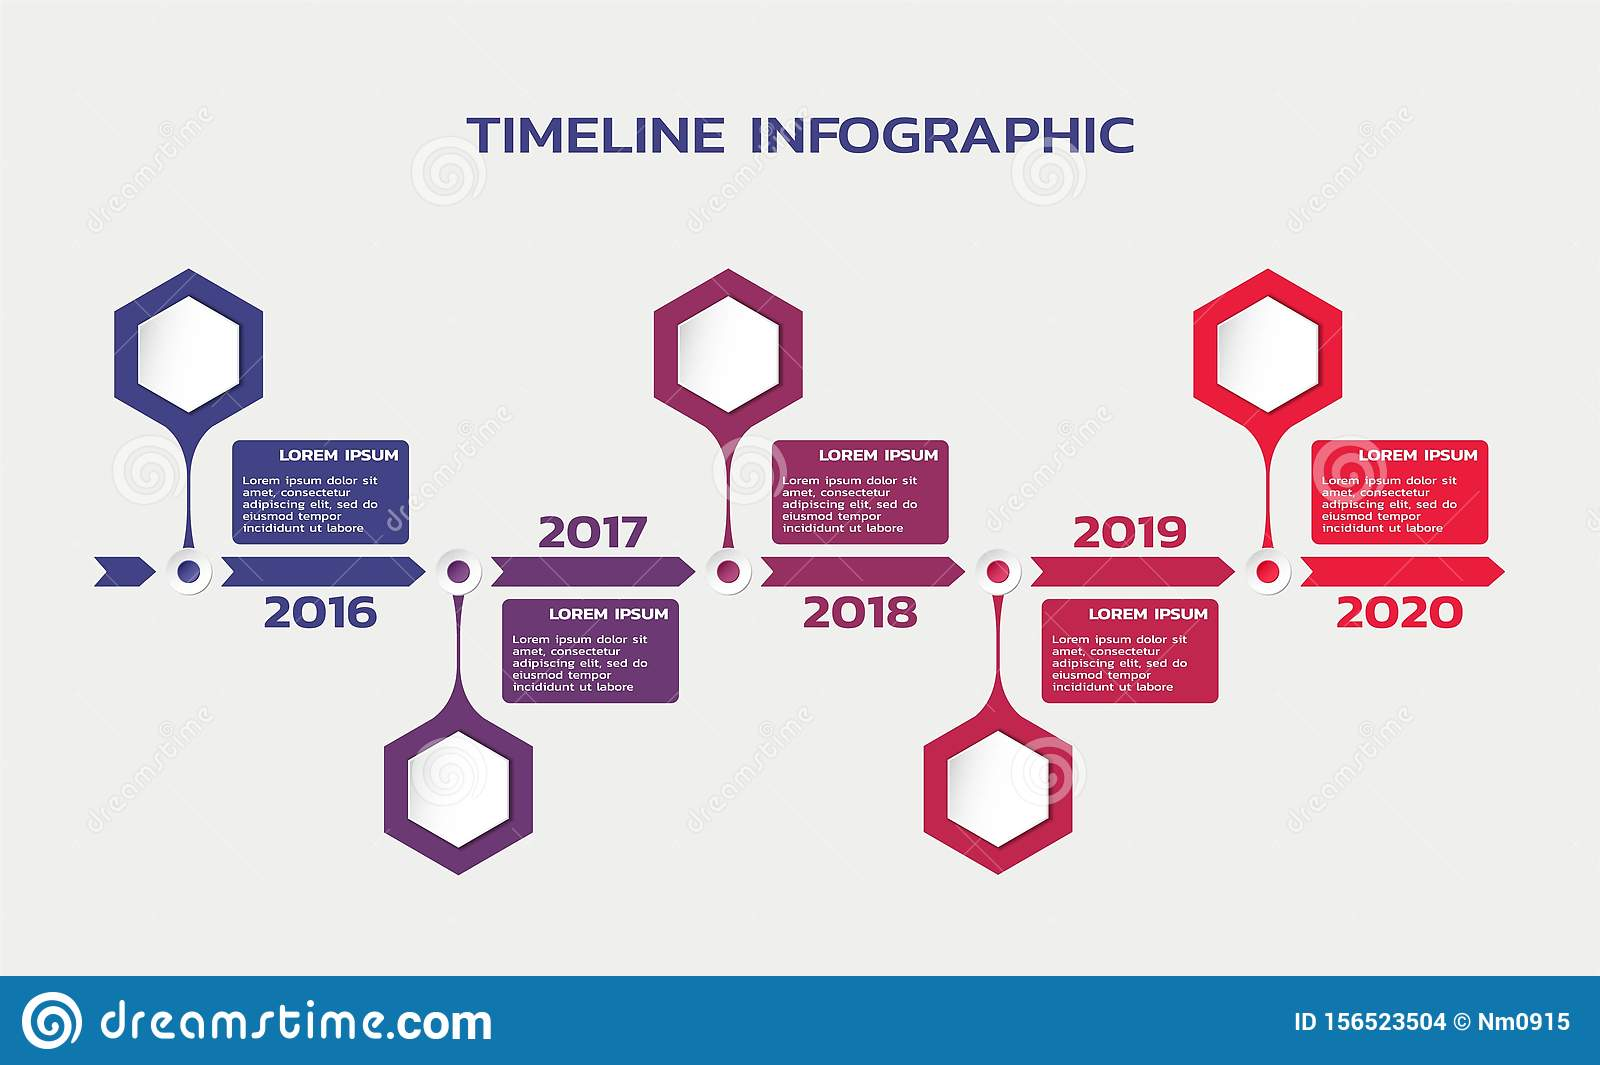 Timeline infographic template with hexagons, years and text. process flowchart